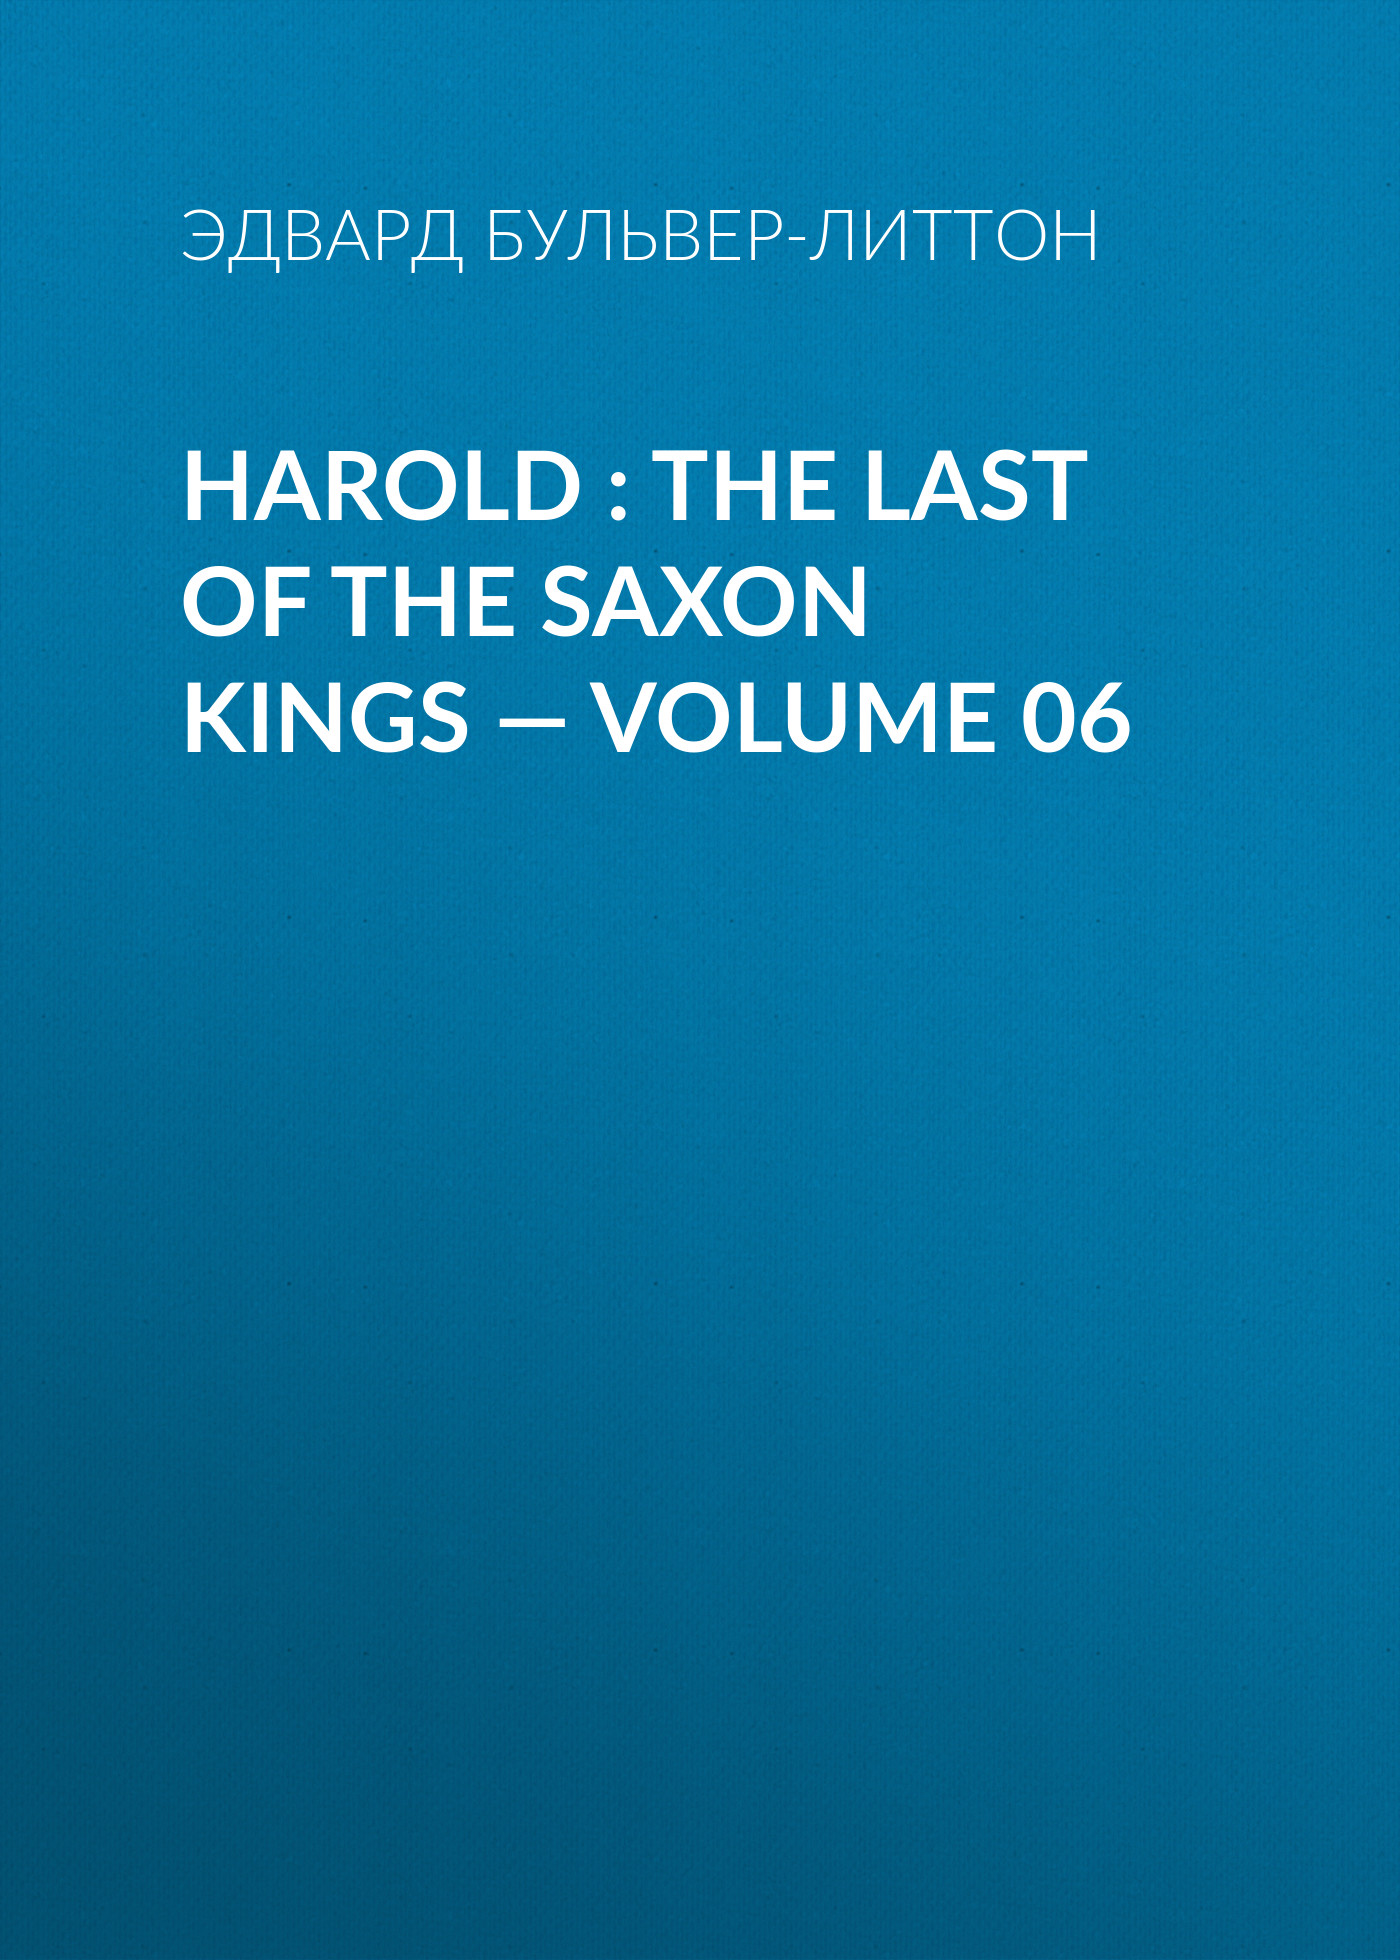 Эдвард Бульвер-Литтон Harold : the Last of the Saxon Kings — Volume 06 эдвард бульвер литтон harold the last of the saxon kings volume 10